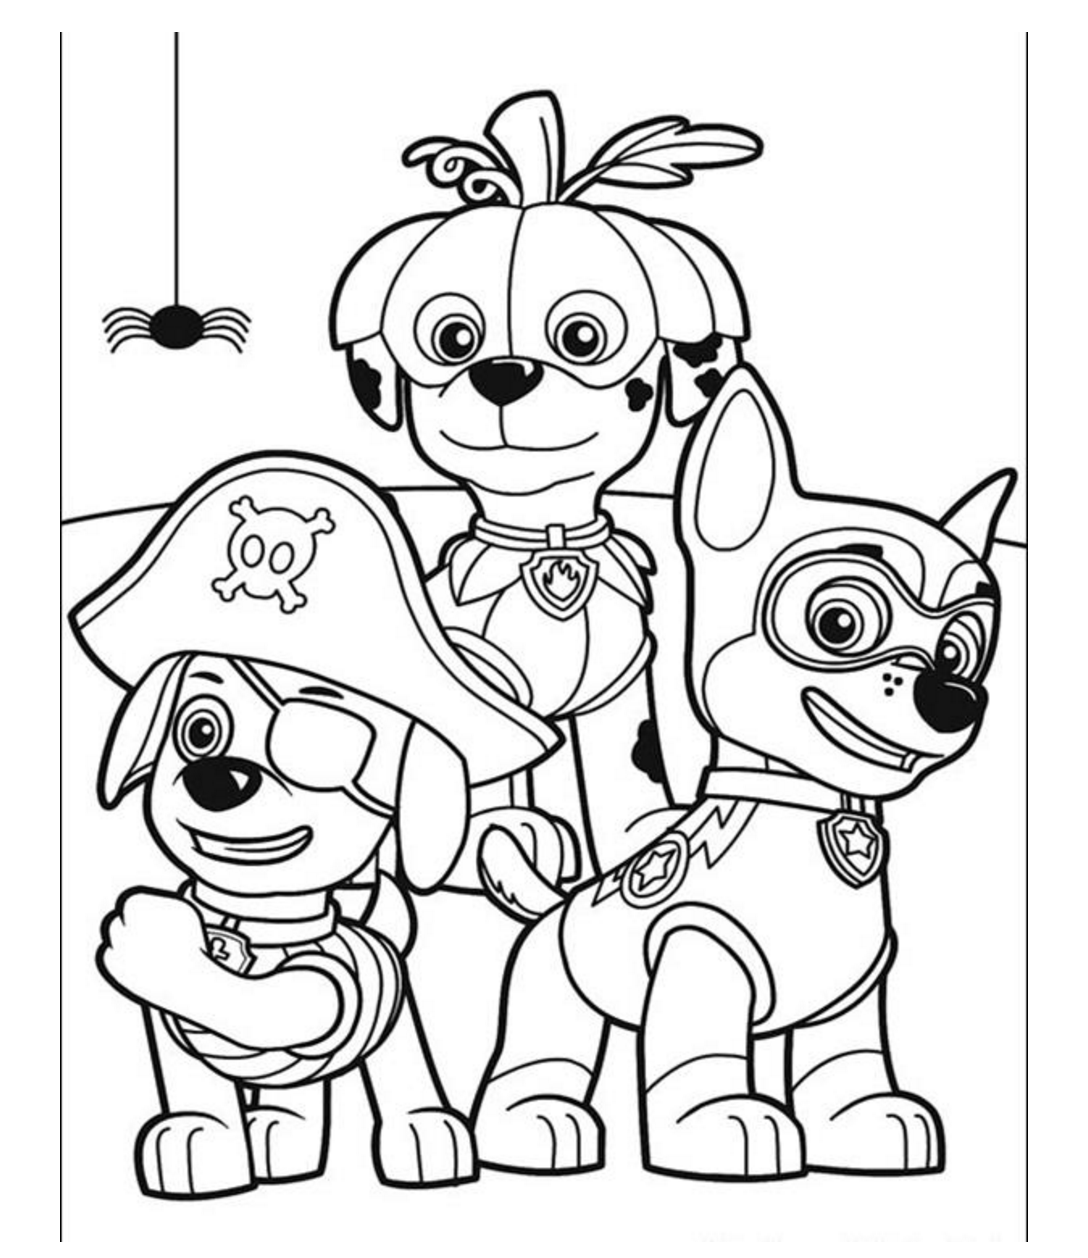 PAW Patrol on Halloween Coloring